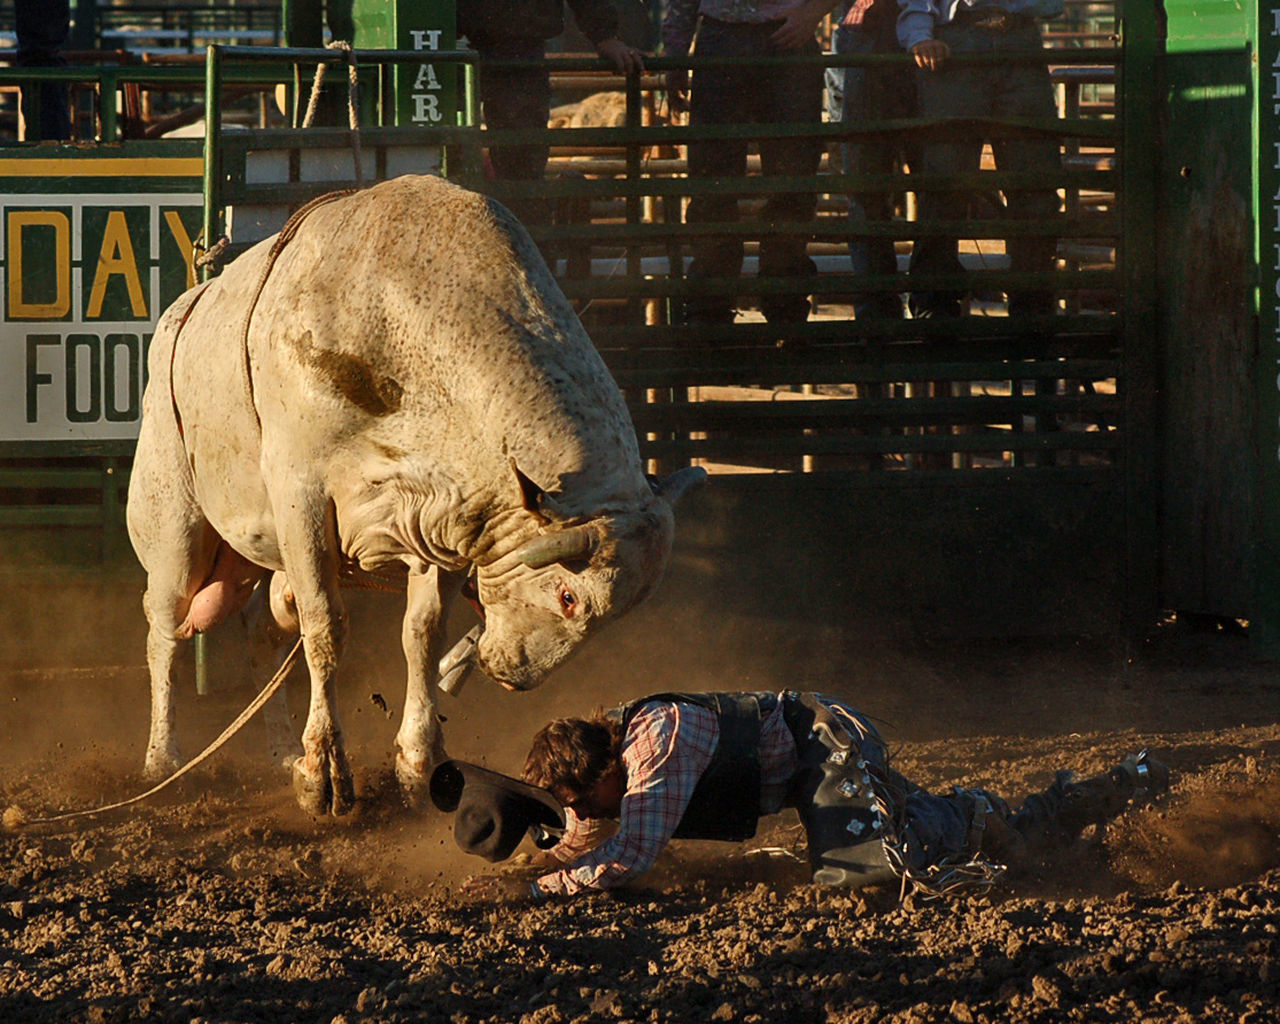 Say Your Prayers Cowboy Arena Bull Riding  Chute Cowboy Cowboy Hat Danger Day Dirt Domestic Animals FaceDown Full Length Horns Low Section Mammal Men Nature One Person Outdoors People Real People Rodeo Sitting Stomp Thrown Vest